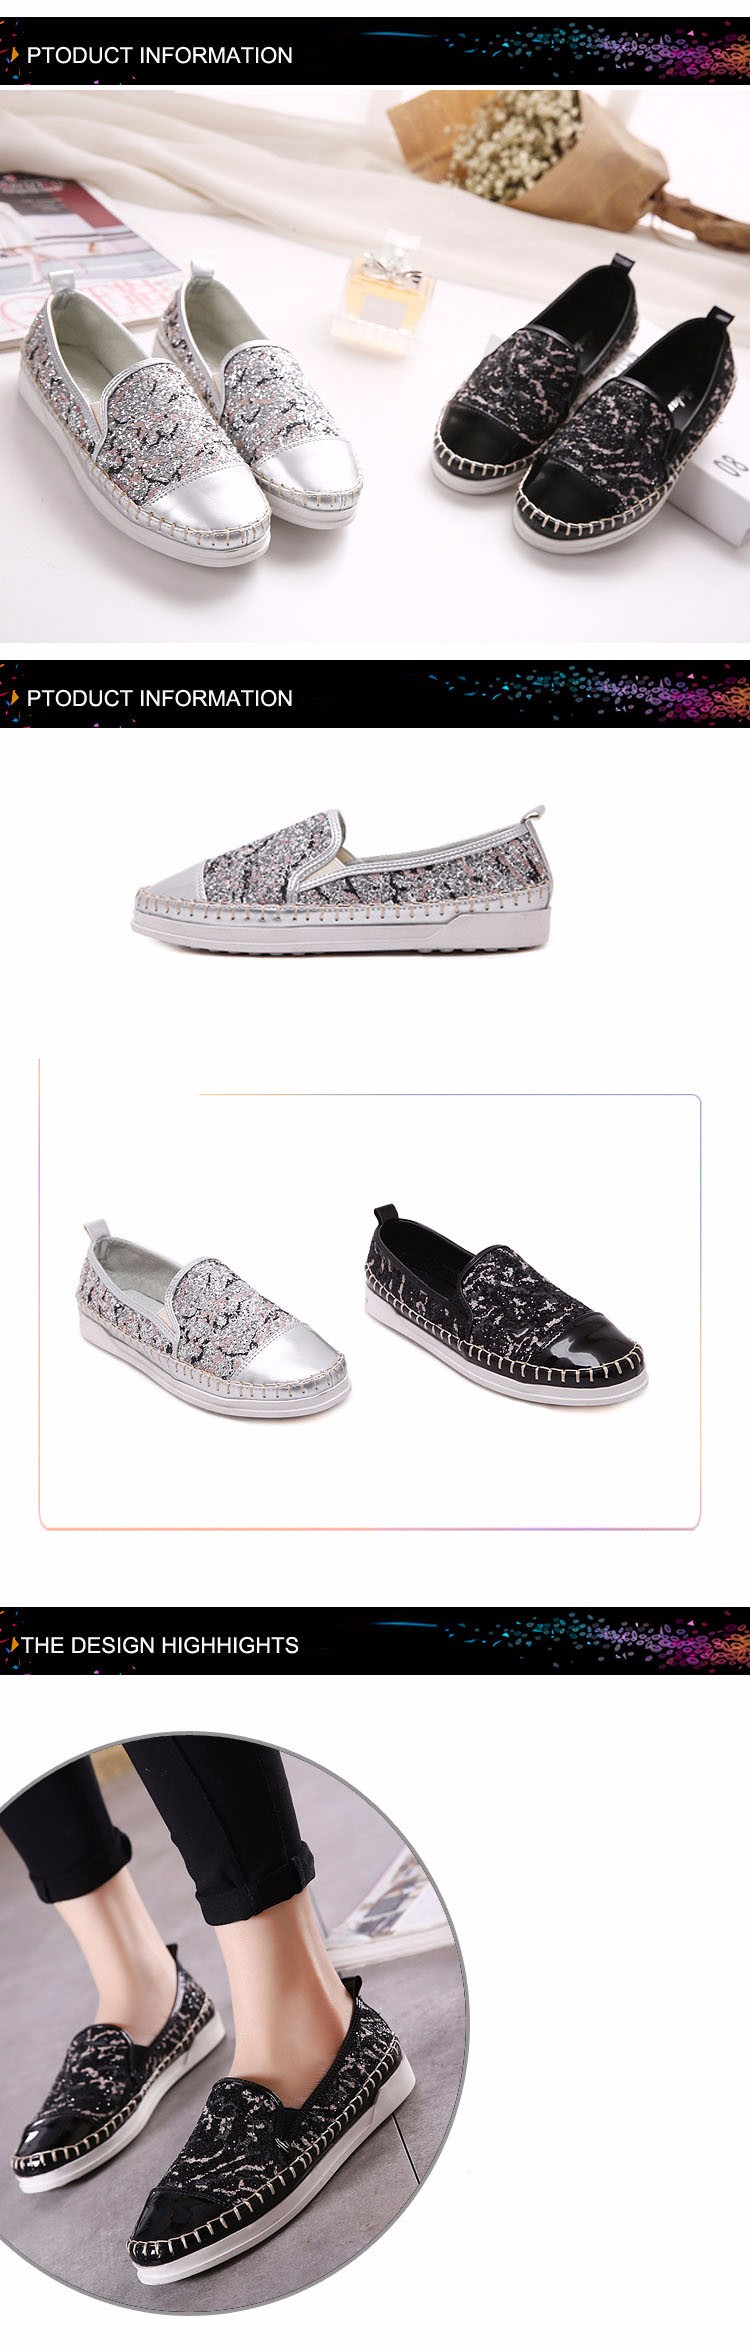 NEW 2016 Spring Fall Glitter Style Brand Women Snakes Loafers Flats Shoes Woman Casual Slip on Platform a Pedal Lazy Shoes M1.5